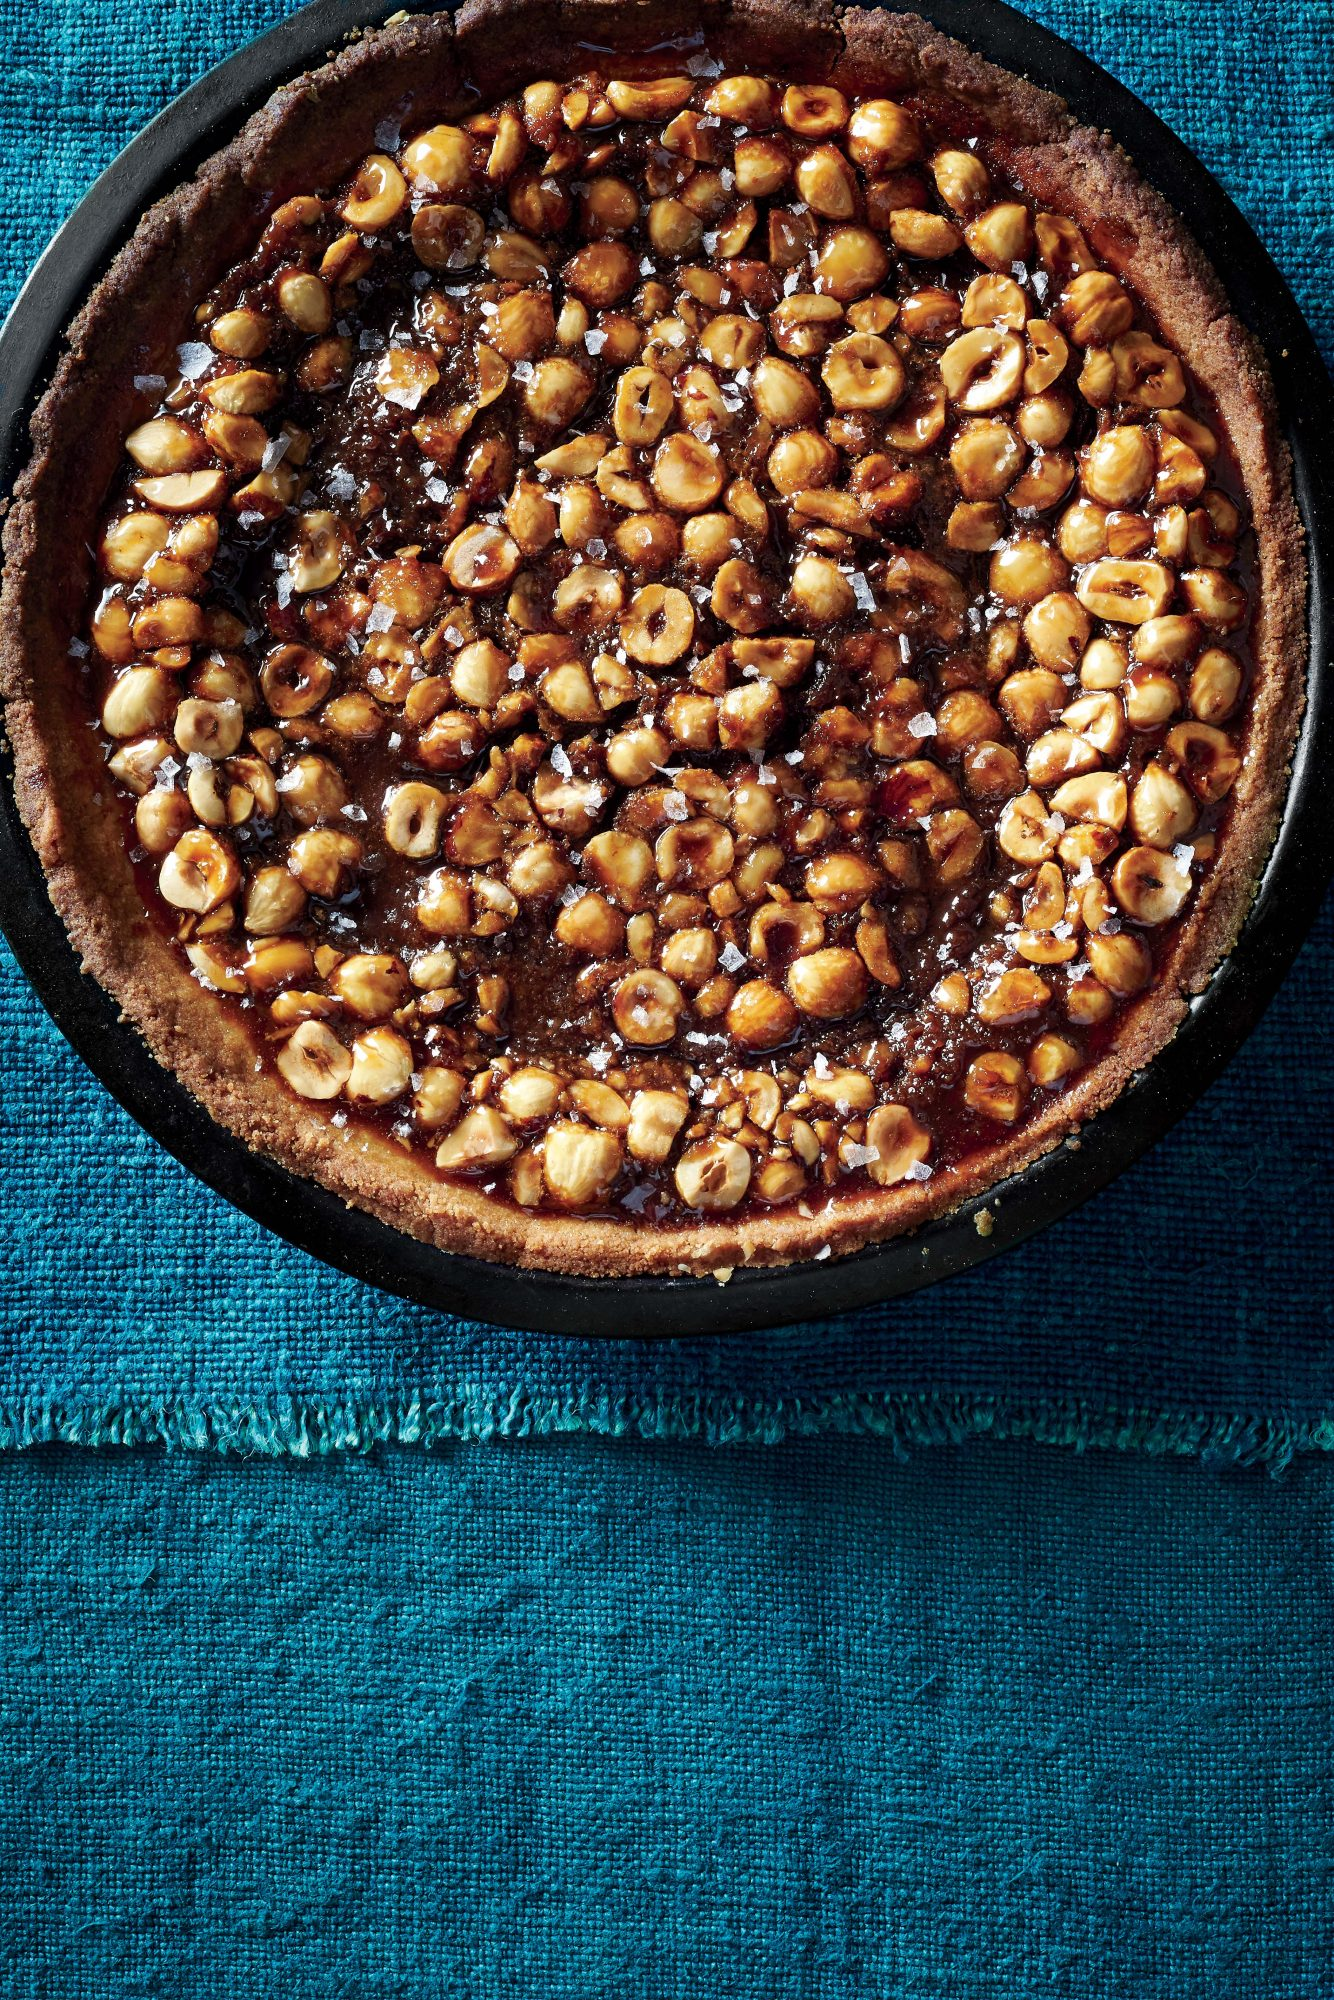 Coffee-Hazelnut Pie